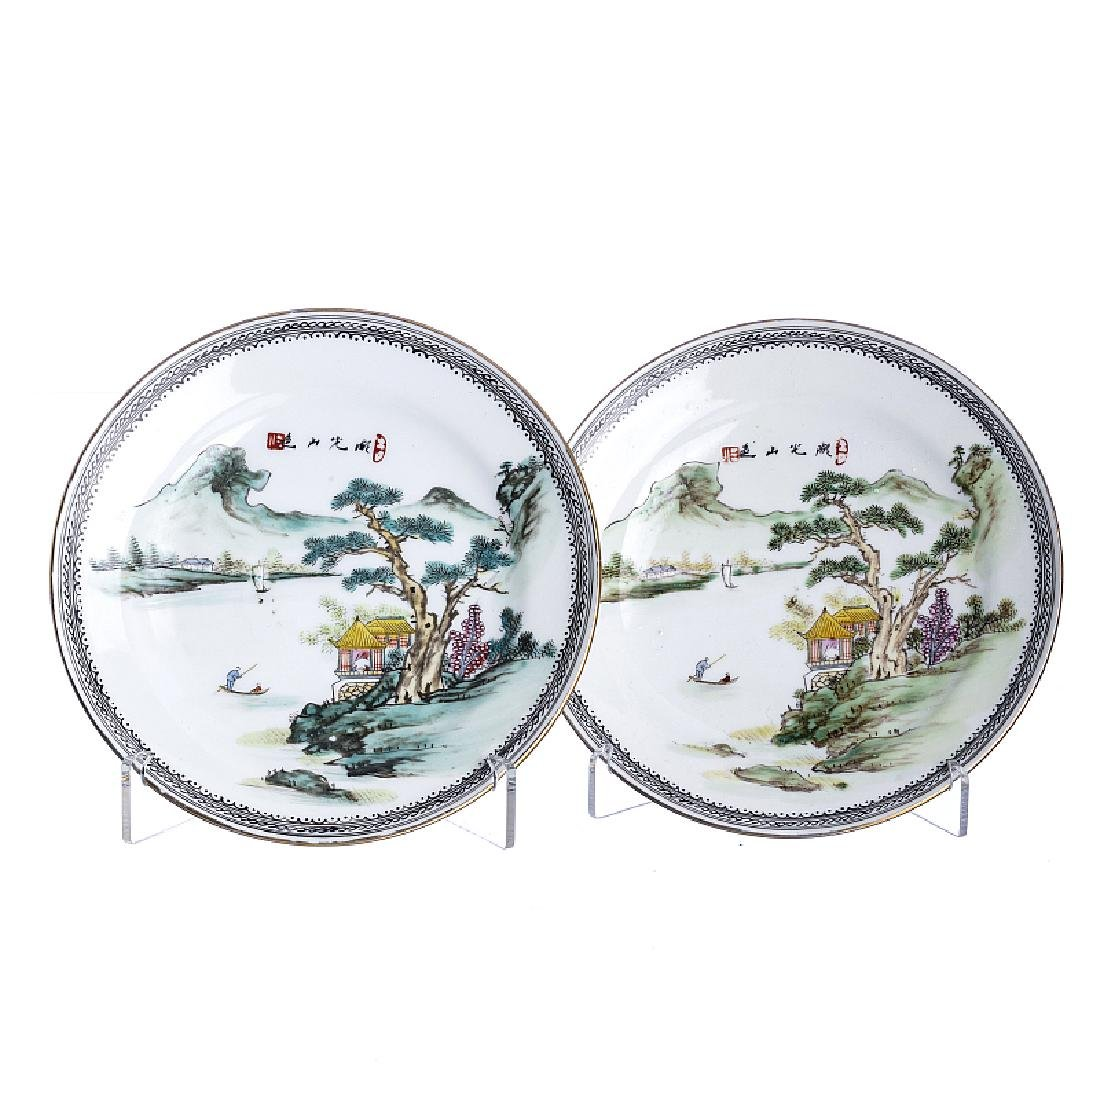 Pair of small 'landscape' dishes in Chinese porcelain